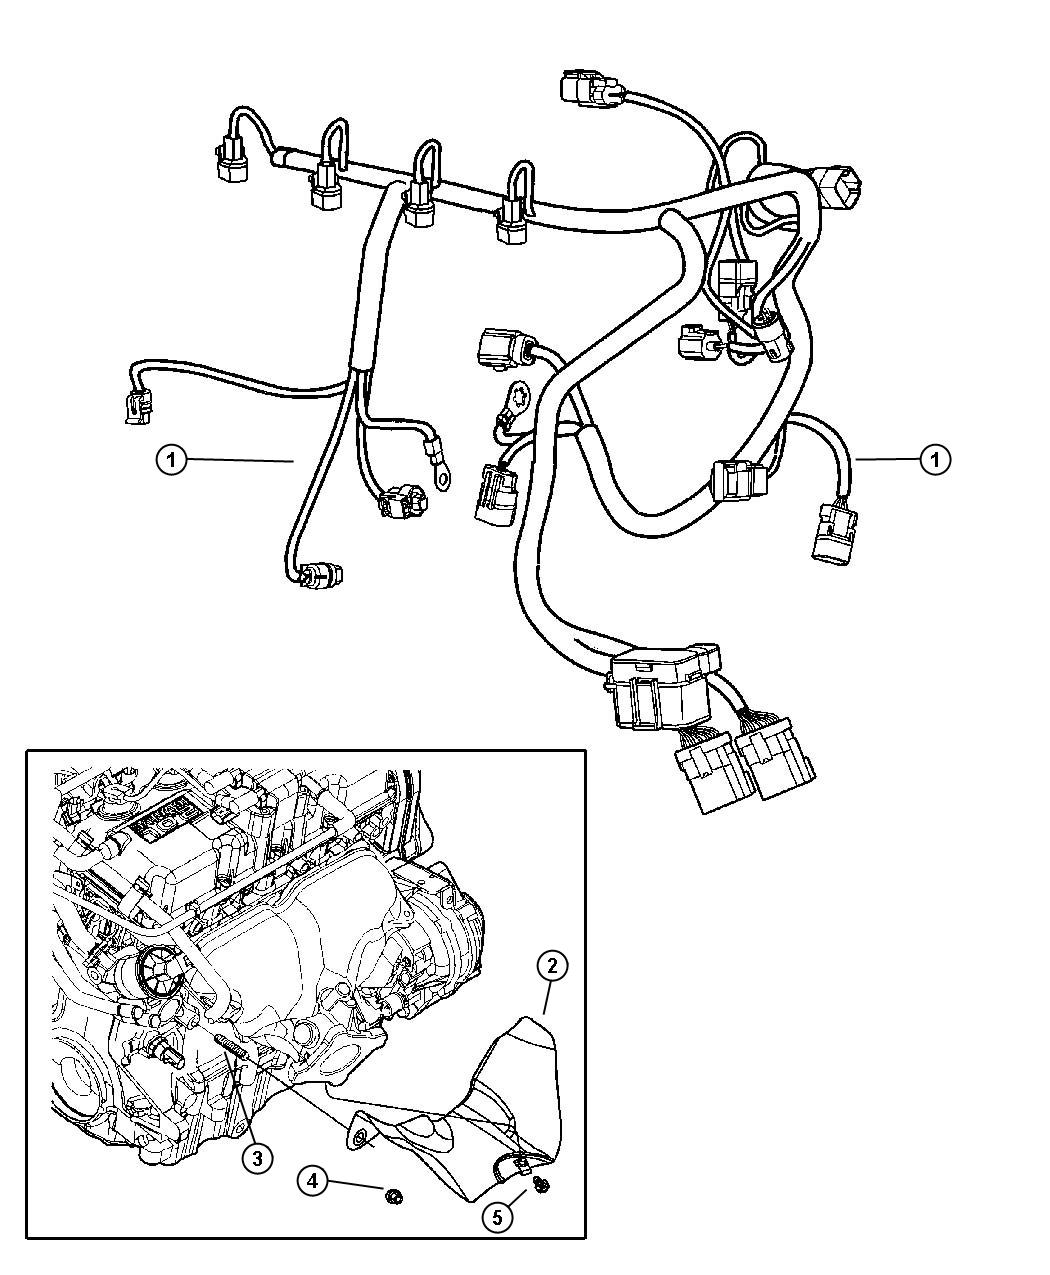 dodge 41te electrical diagram  dodge  auto wiring diagram